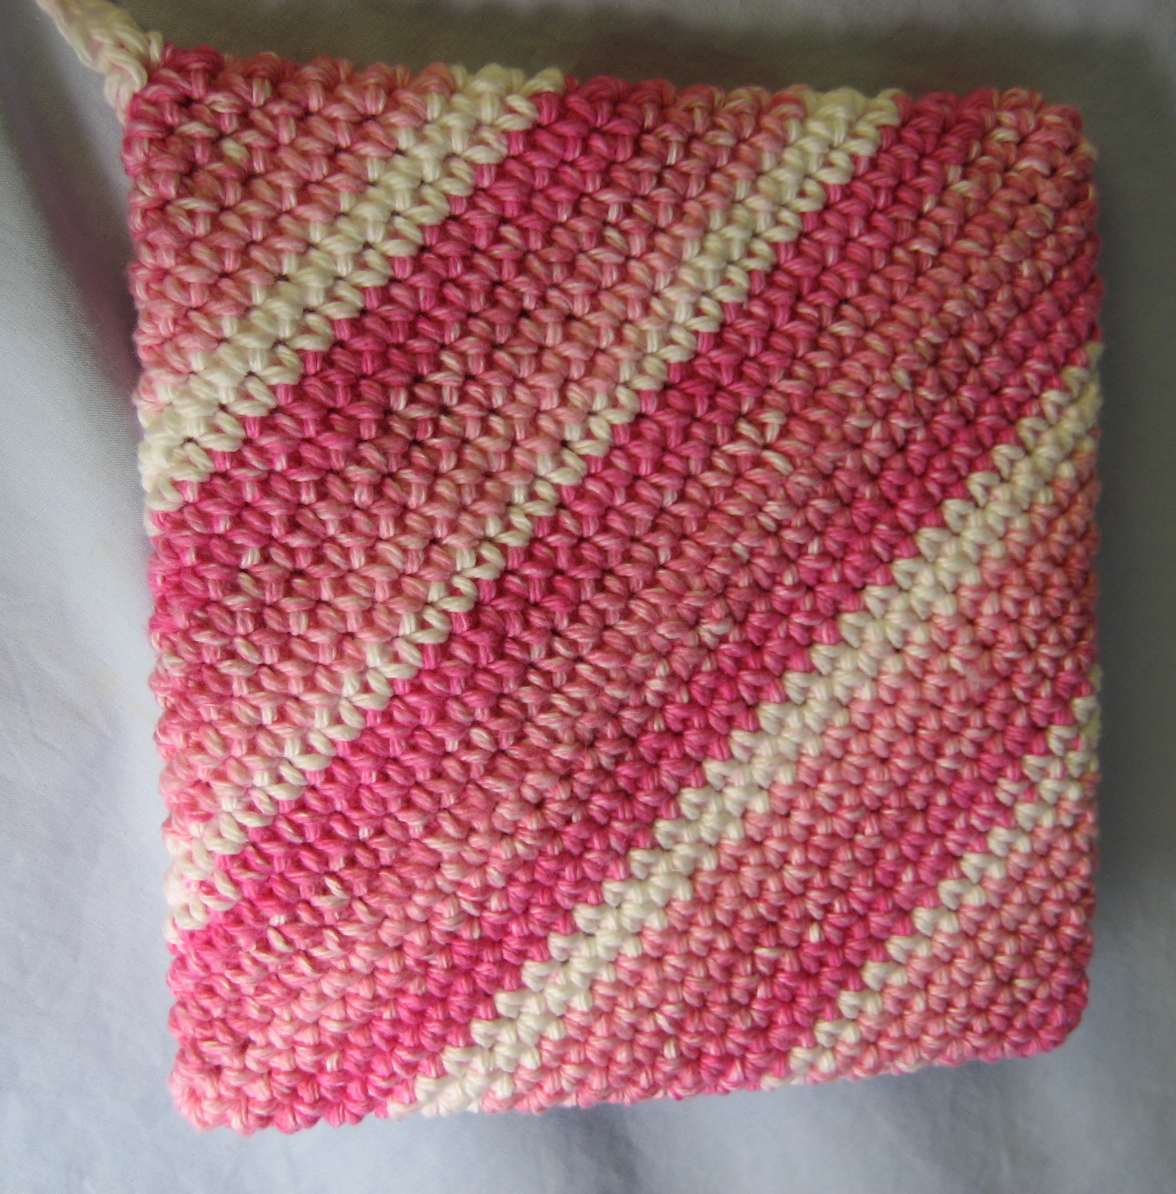 Double Knit Potholder Pattern : Hooked on Needles: Crocheted Hot Pad/Potholder - Its double thick!